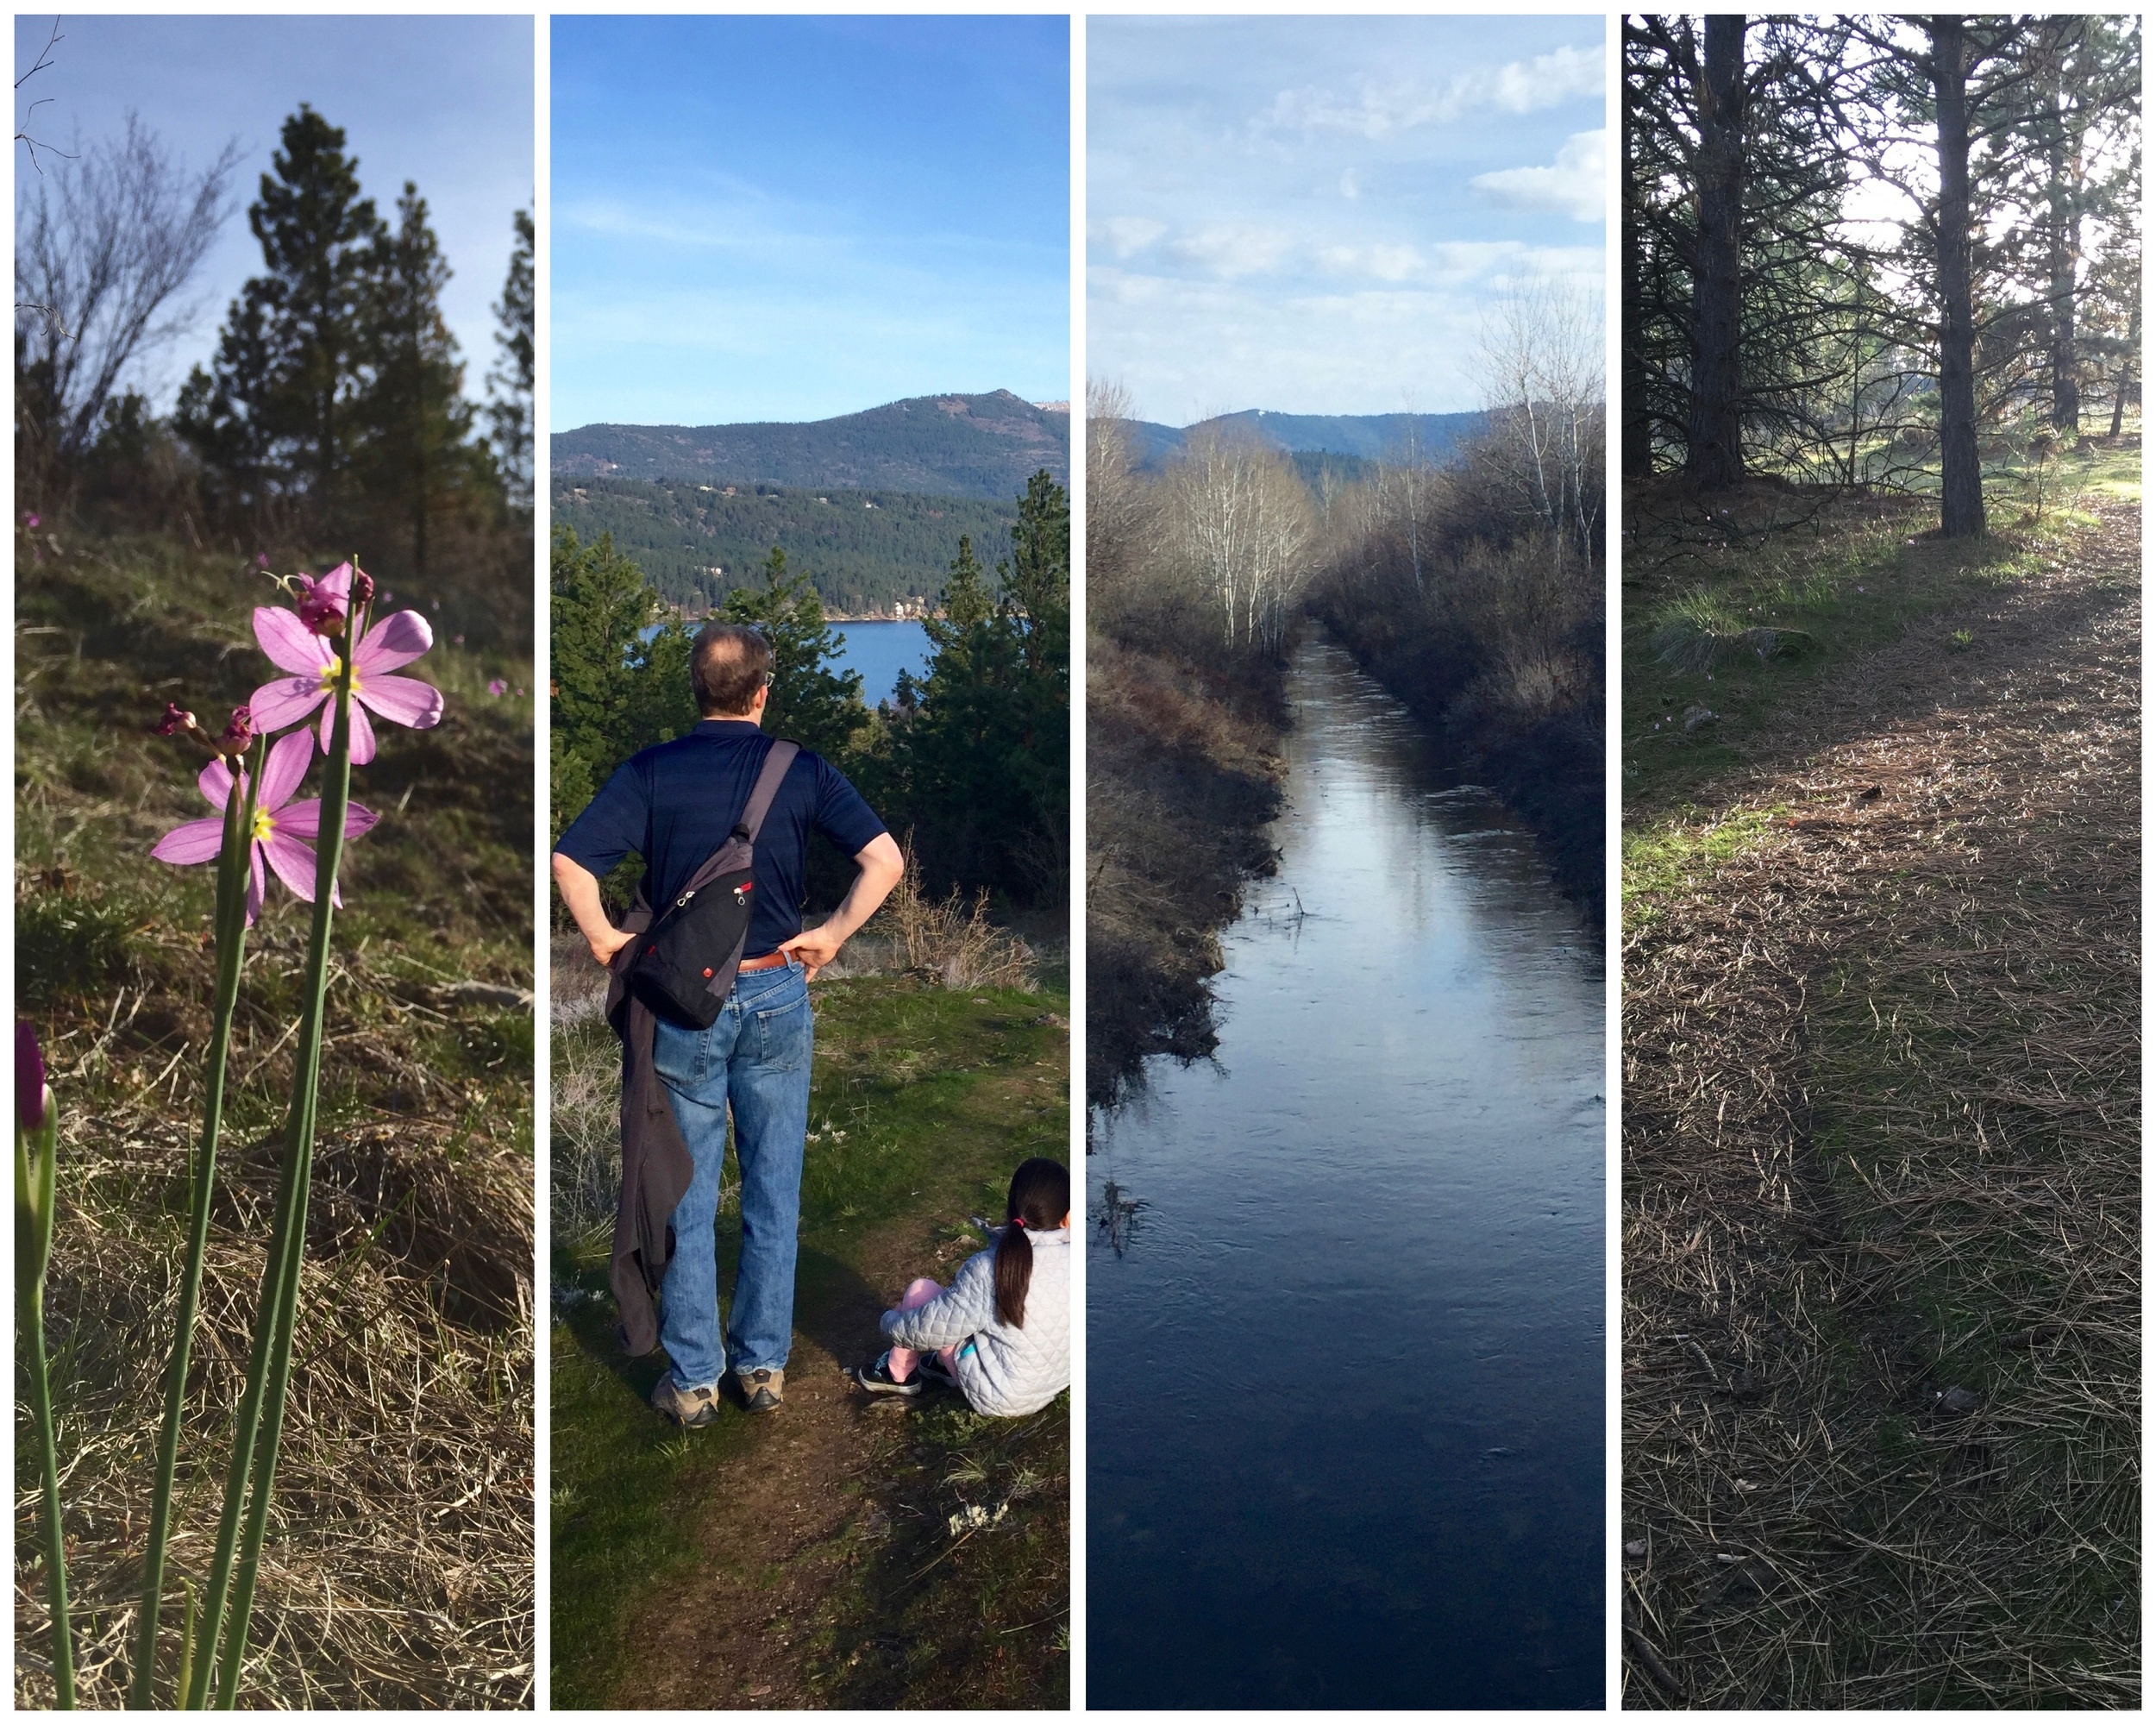 Scenes from our Saturday hike.